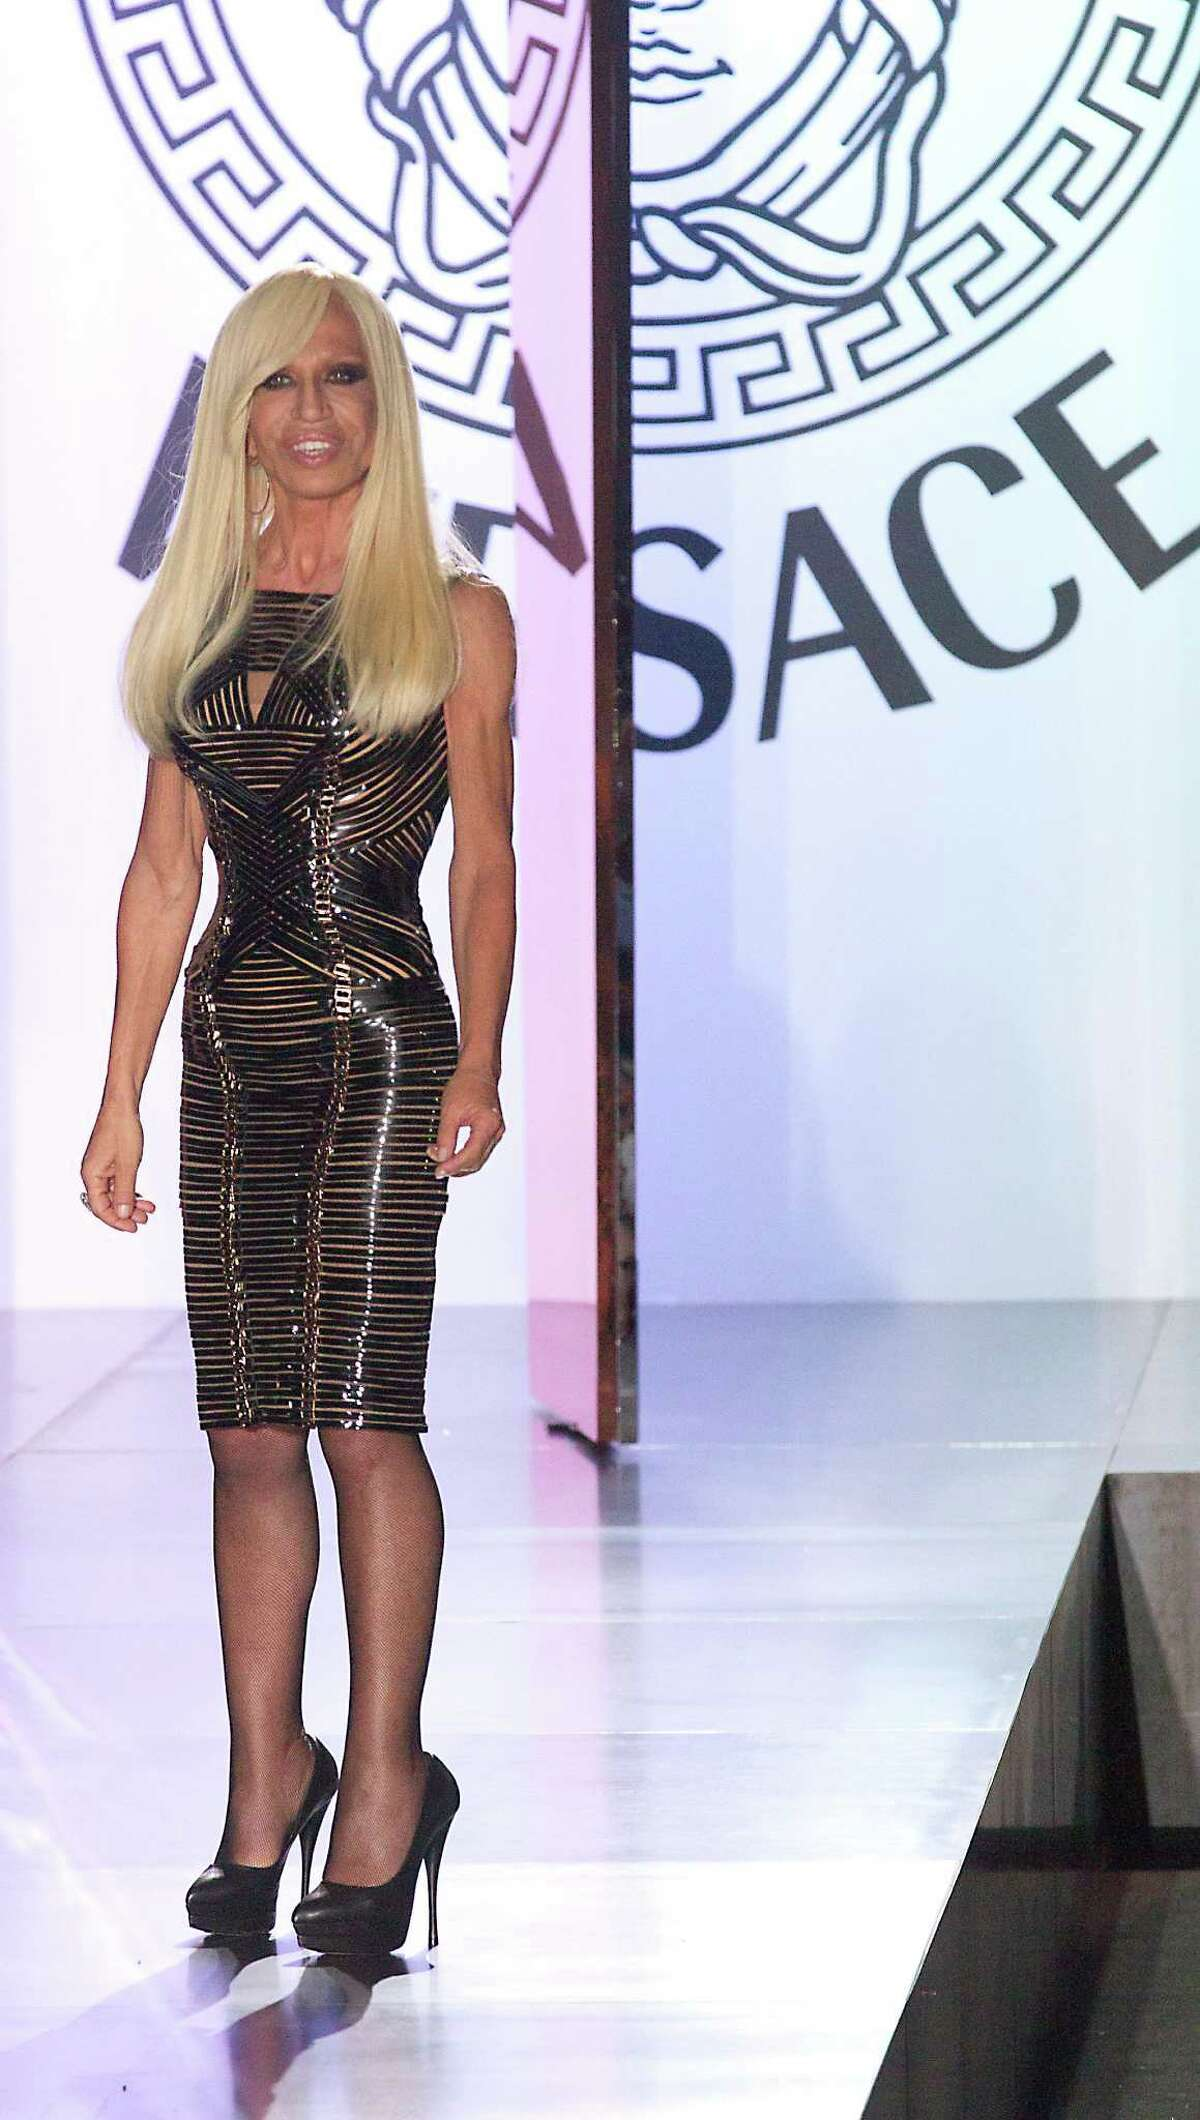 Fashion designer Donatella Versace appears at the end of her Women's Fall Winter 2013 haute couture fashion collection in Paris, France, Sunday, July 1, 2012.